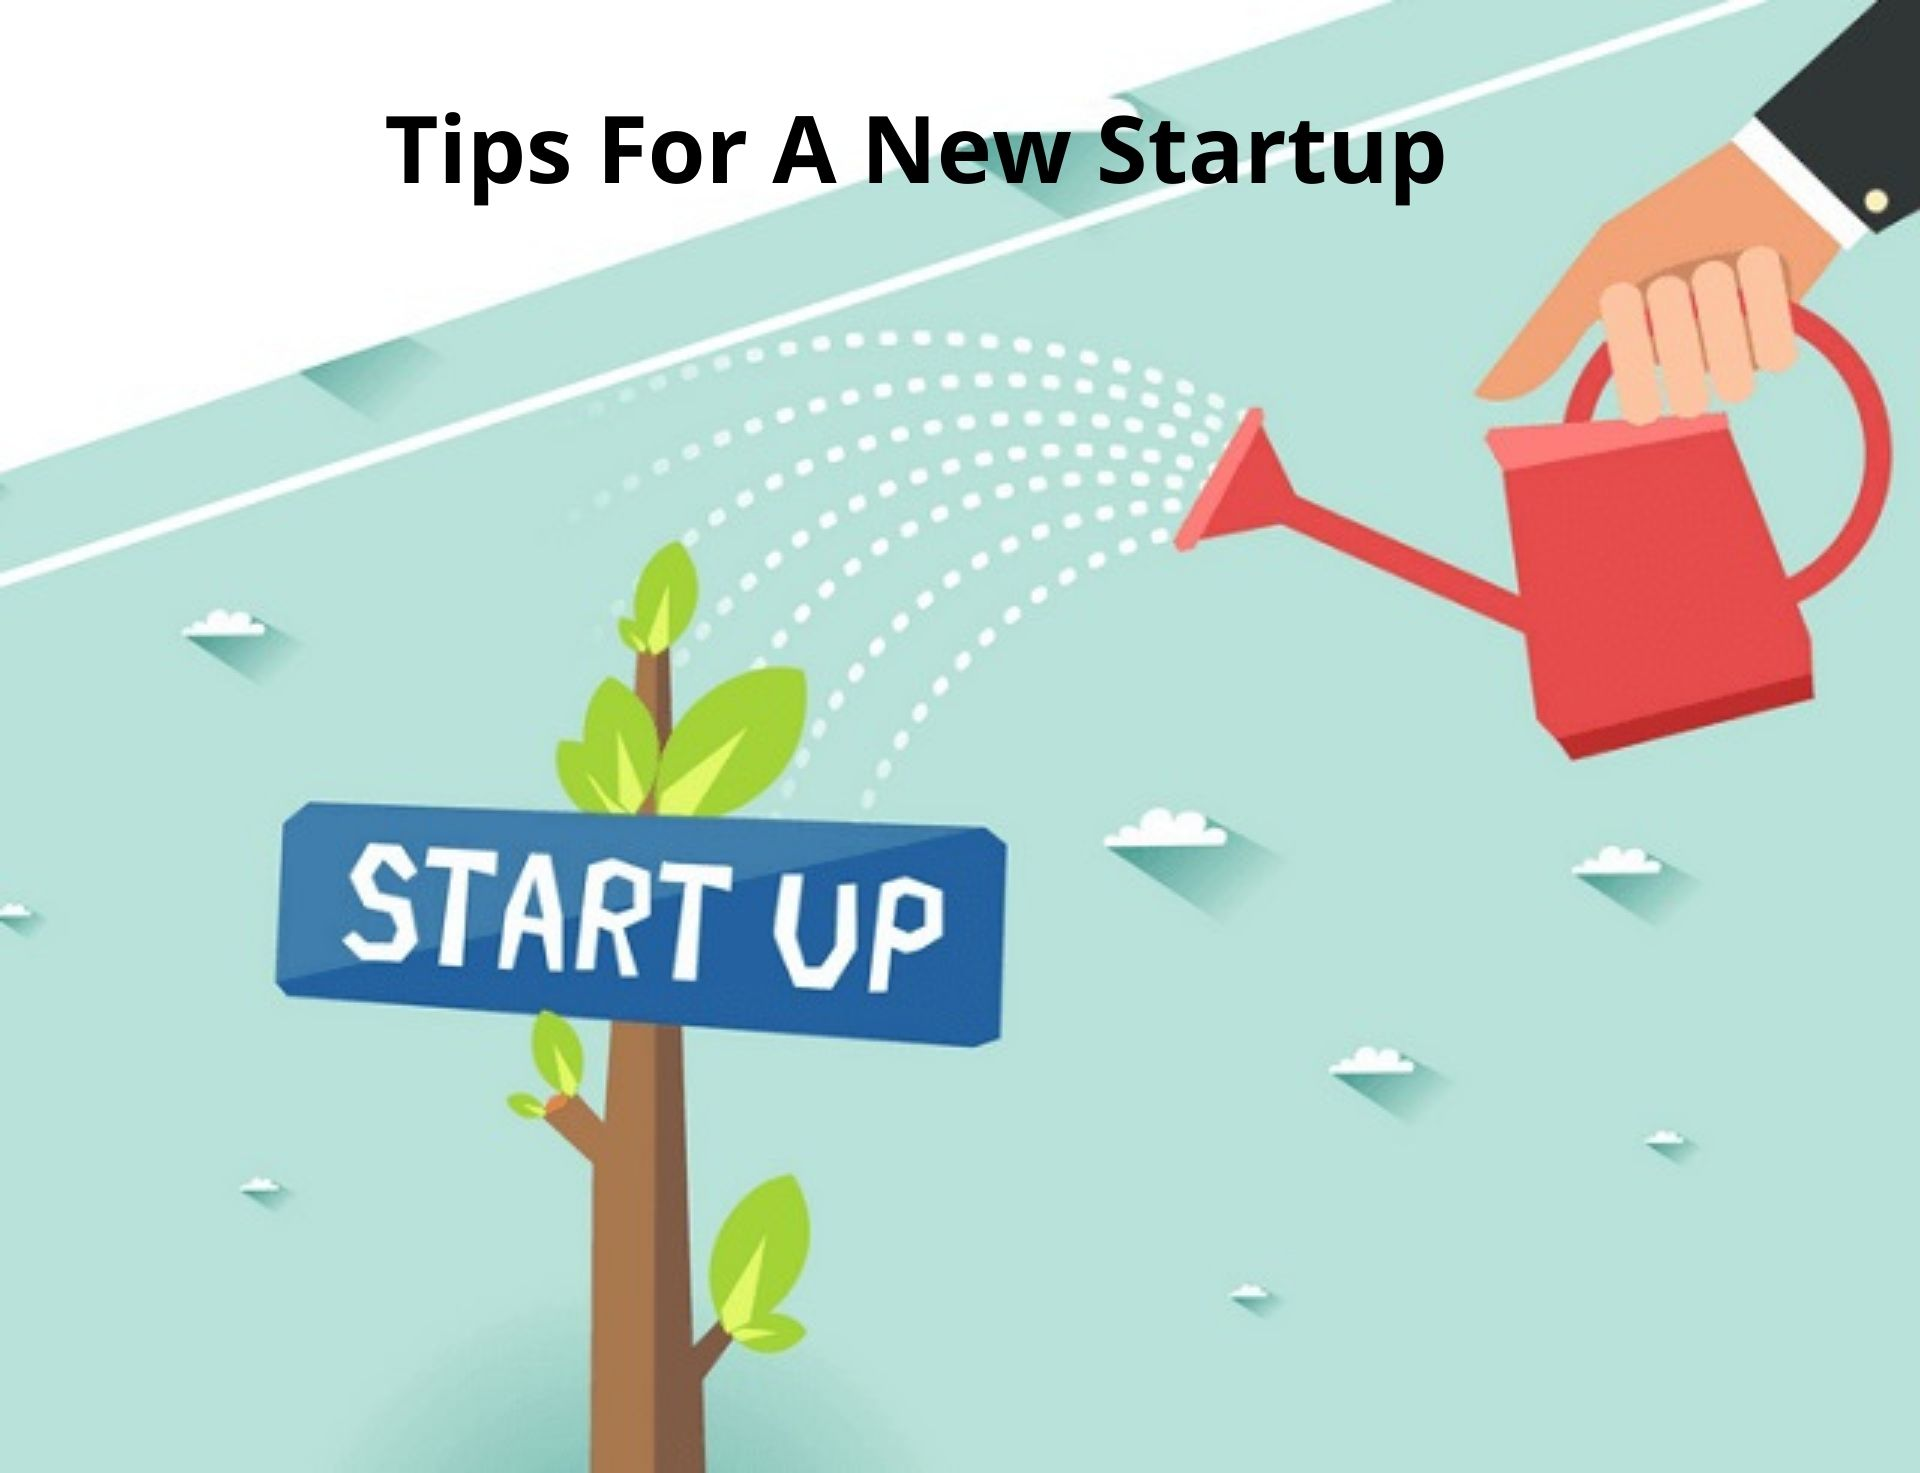 Tips For A New Startup